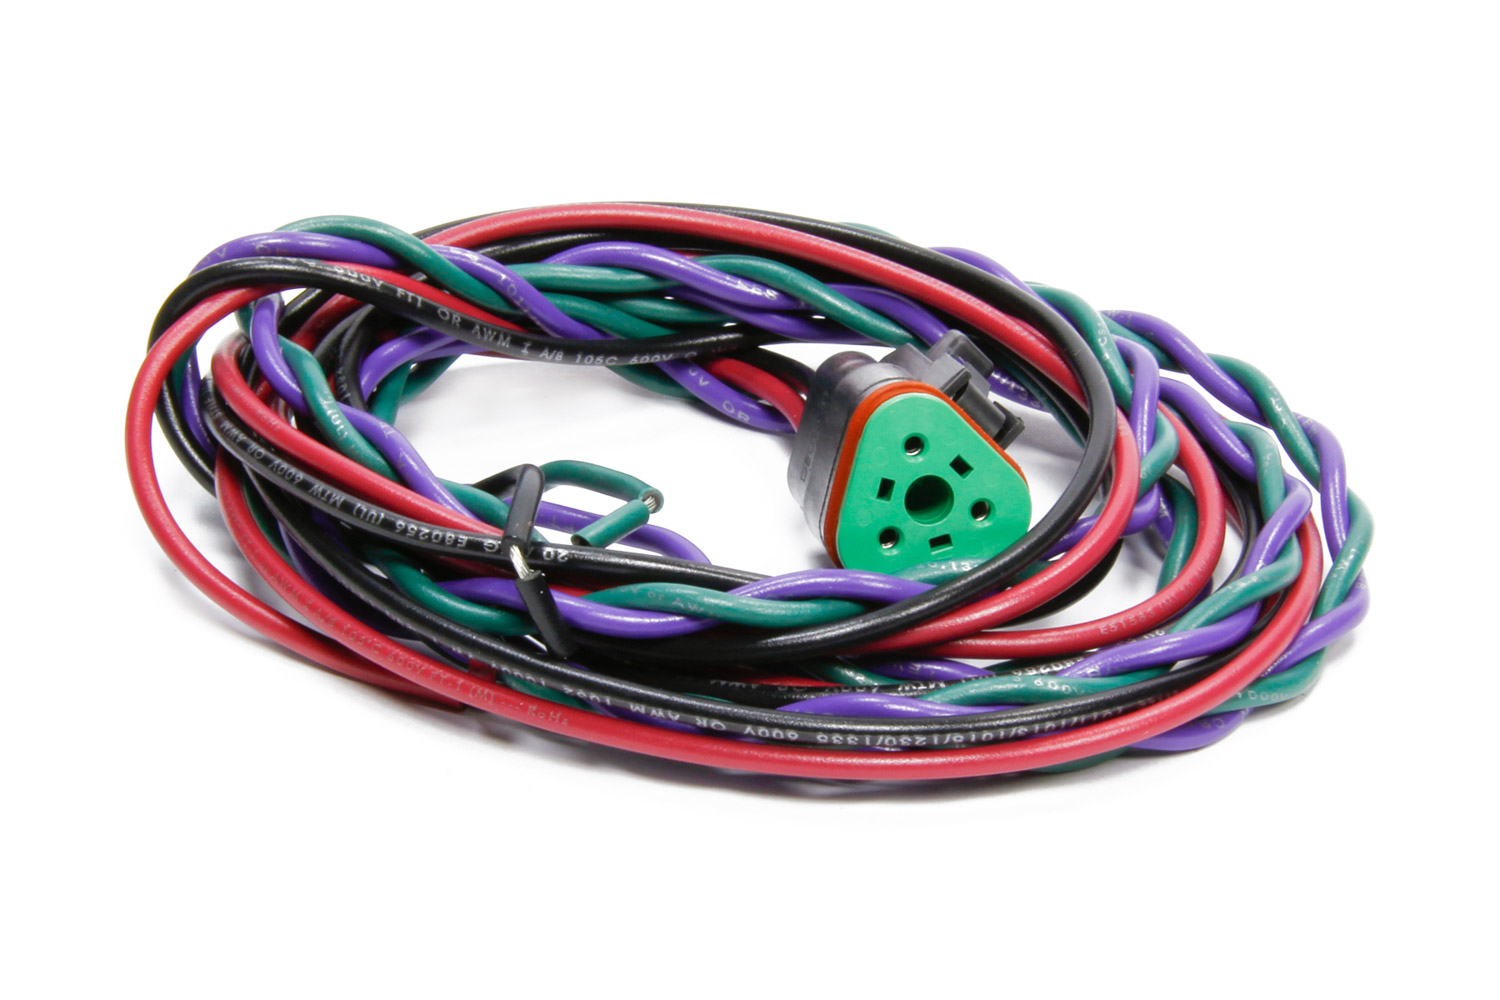 Shop For Fast Electronics Wiring Harnesses Etheridge Race Parts Efi Wire Harness 4 Pin Distributor To Cran